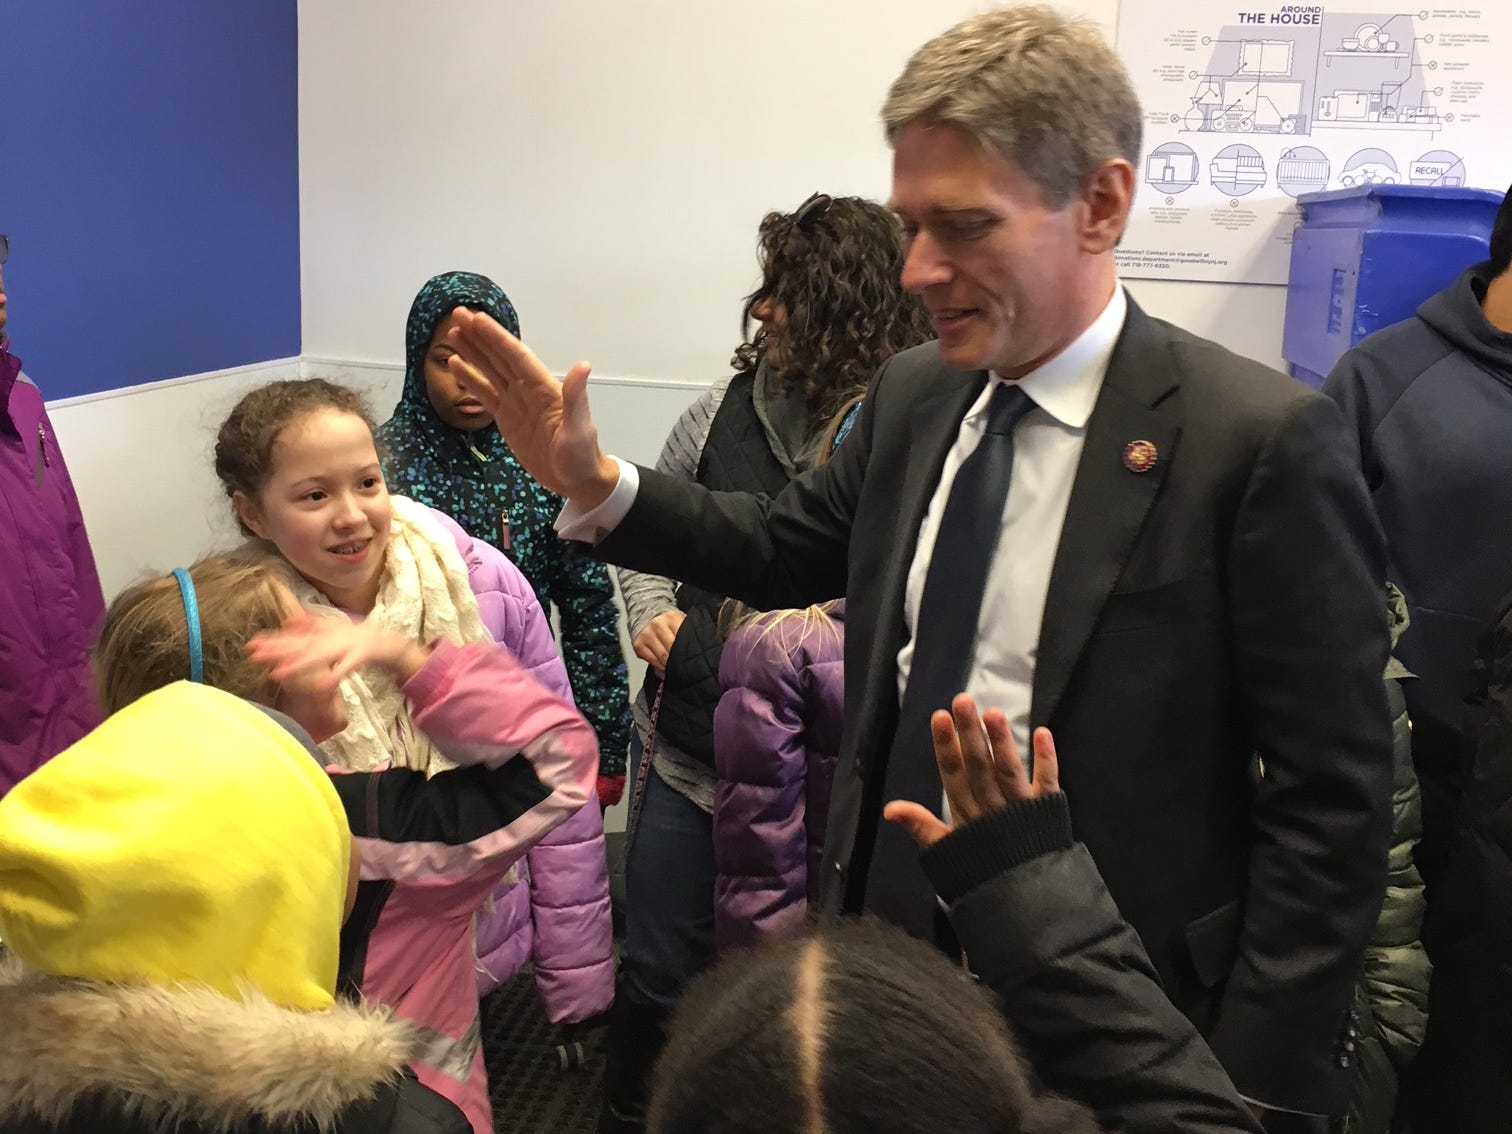 Twenty-five girls from the North Plainfield Girl Scout Troop number 65141 stopped by the Goodwill store at 955 Route 22 West in North Plainfield, to drop bags of donations on Saturday, Jan. 12. Newly-elected U.S. Congressman Tom Malinowski (NJ District 7) helped present the GoodTurn patches, which were designed by the marketing department of Goodwill NYNJ, to the girl scouts for their donations.